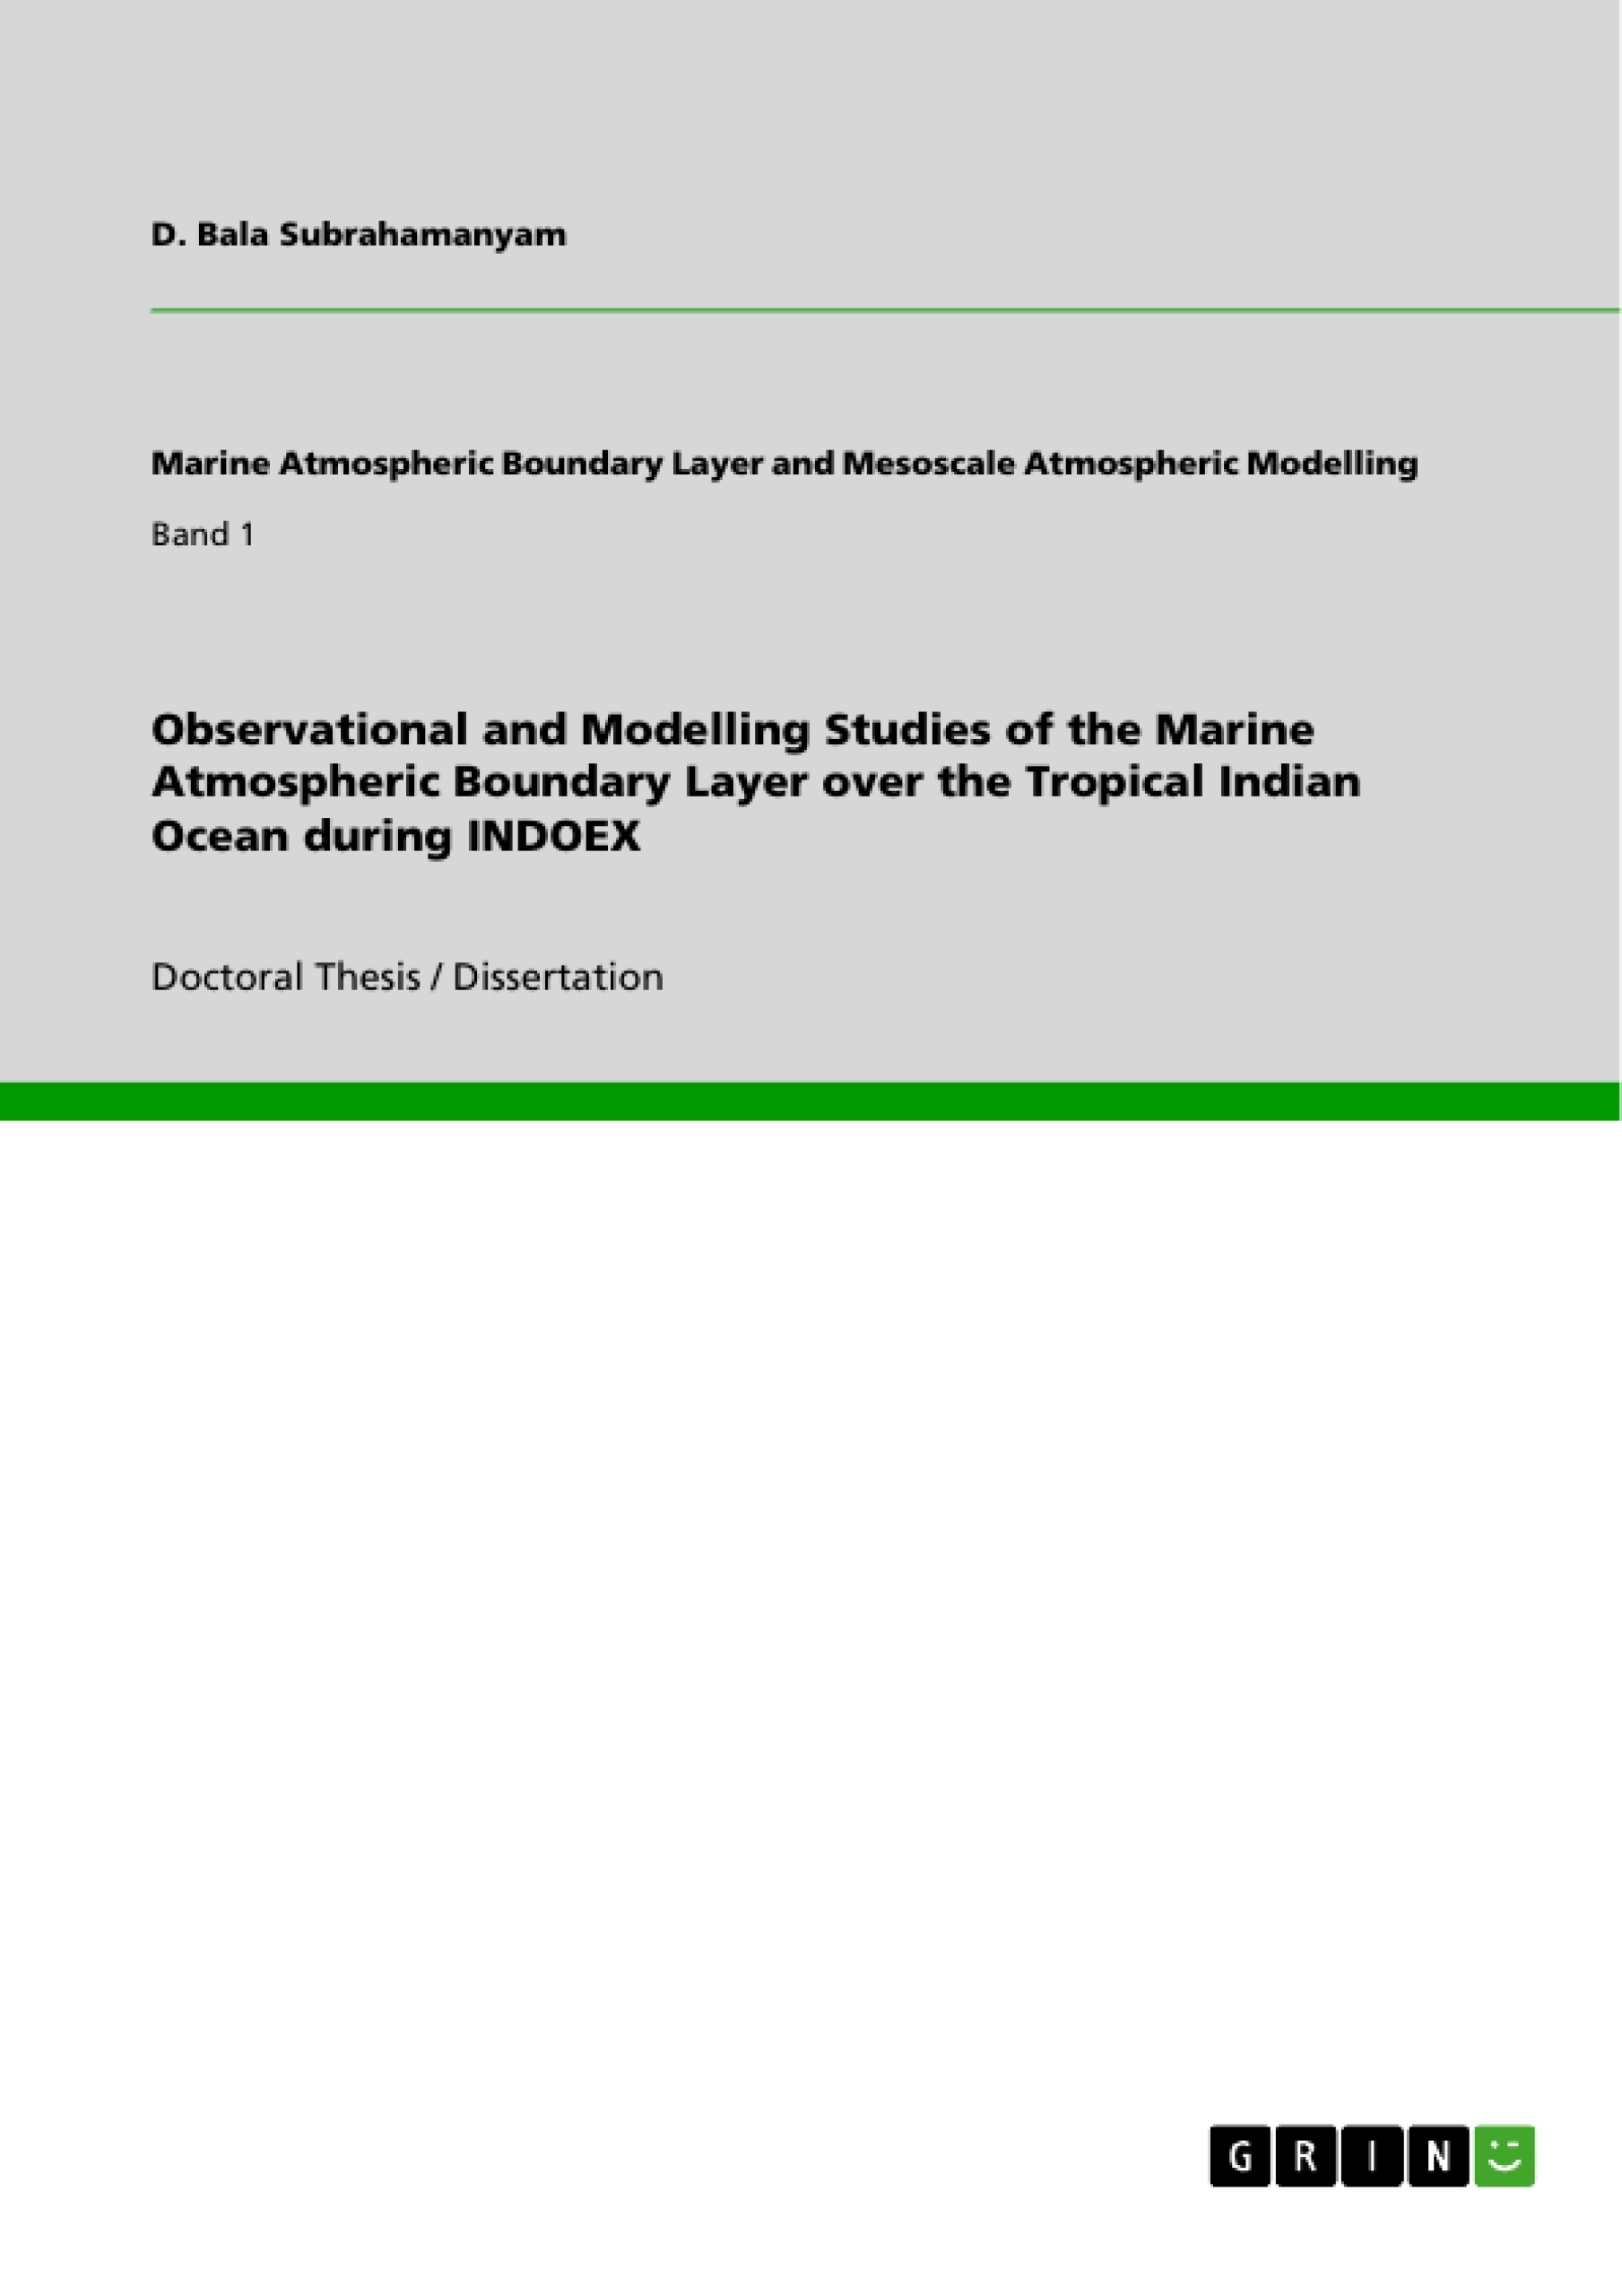 Title: Observational and Modelling Studies of the Marine Atmospheric Boundary Layer over the Tropical Indian Ocean during INDOEX